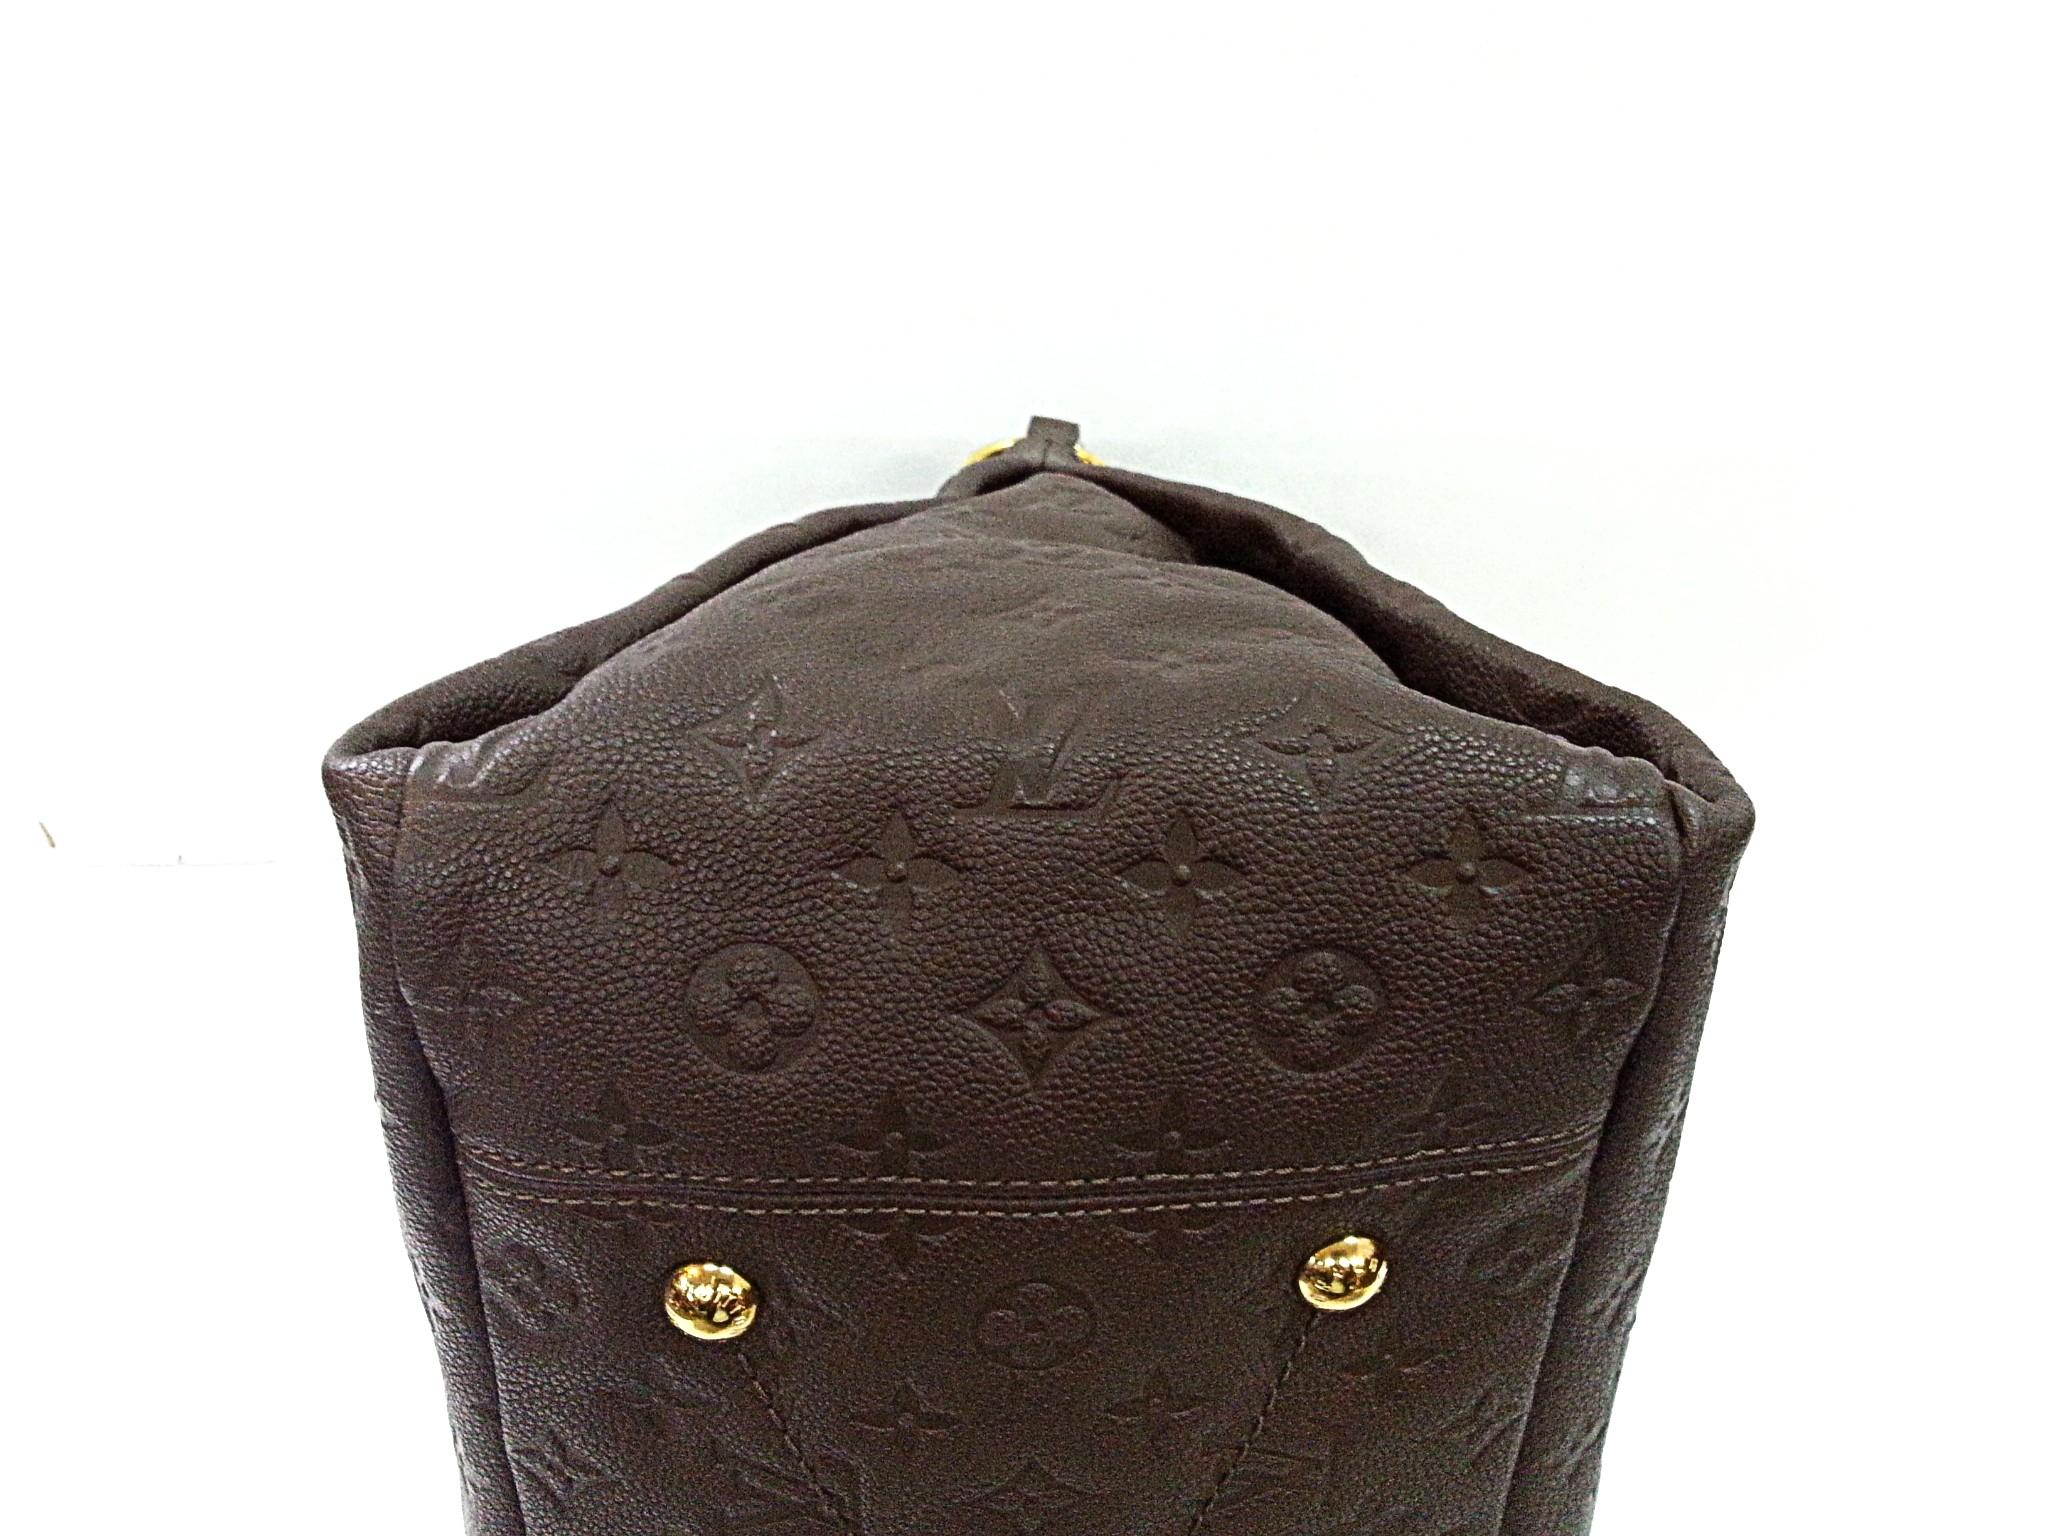 Like New! Authentic Louis Vuitton Monogram Empreinte Artsy MM Ombre {{Only For Sale}} ** No Trade ** {{Fixed Price Non-Neg}} ** 定价 **